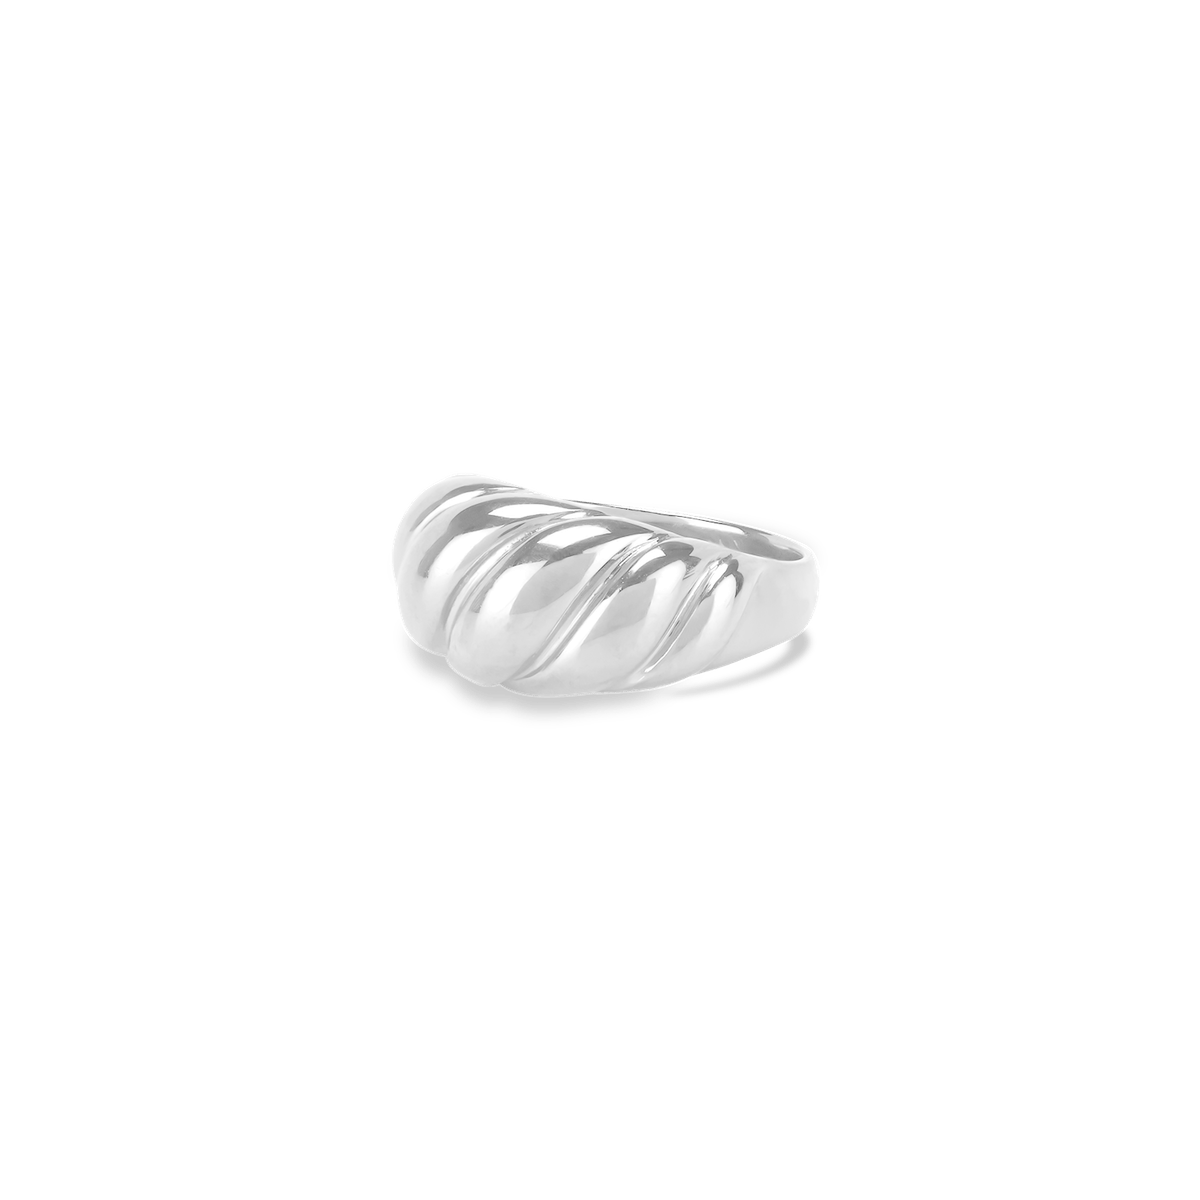 Croissant Dôme Pinky Ring in Sterling Silver